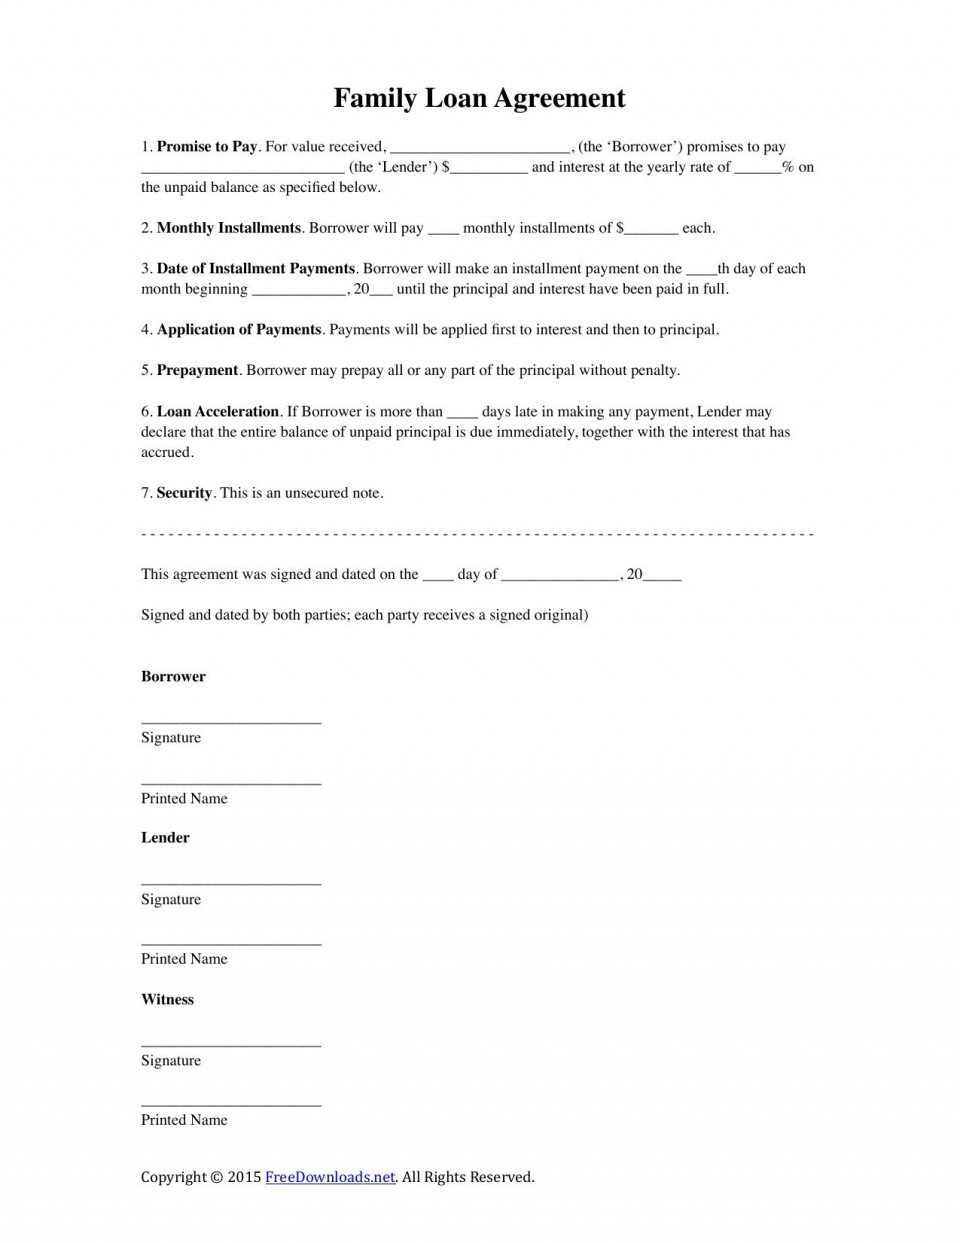 002 Stunning Family Loan Agreement Template Highest Clarity  Free Uk Friend And Simple Australia960